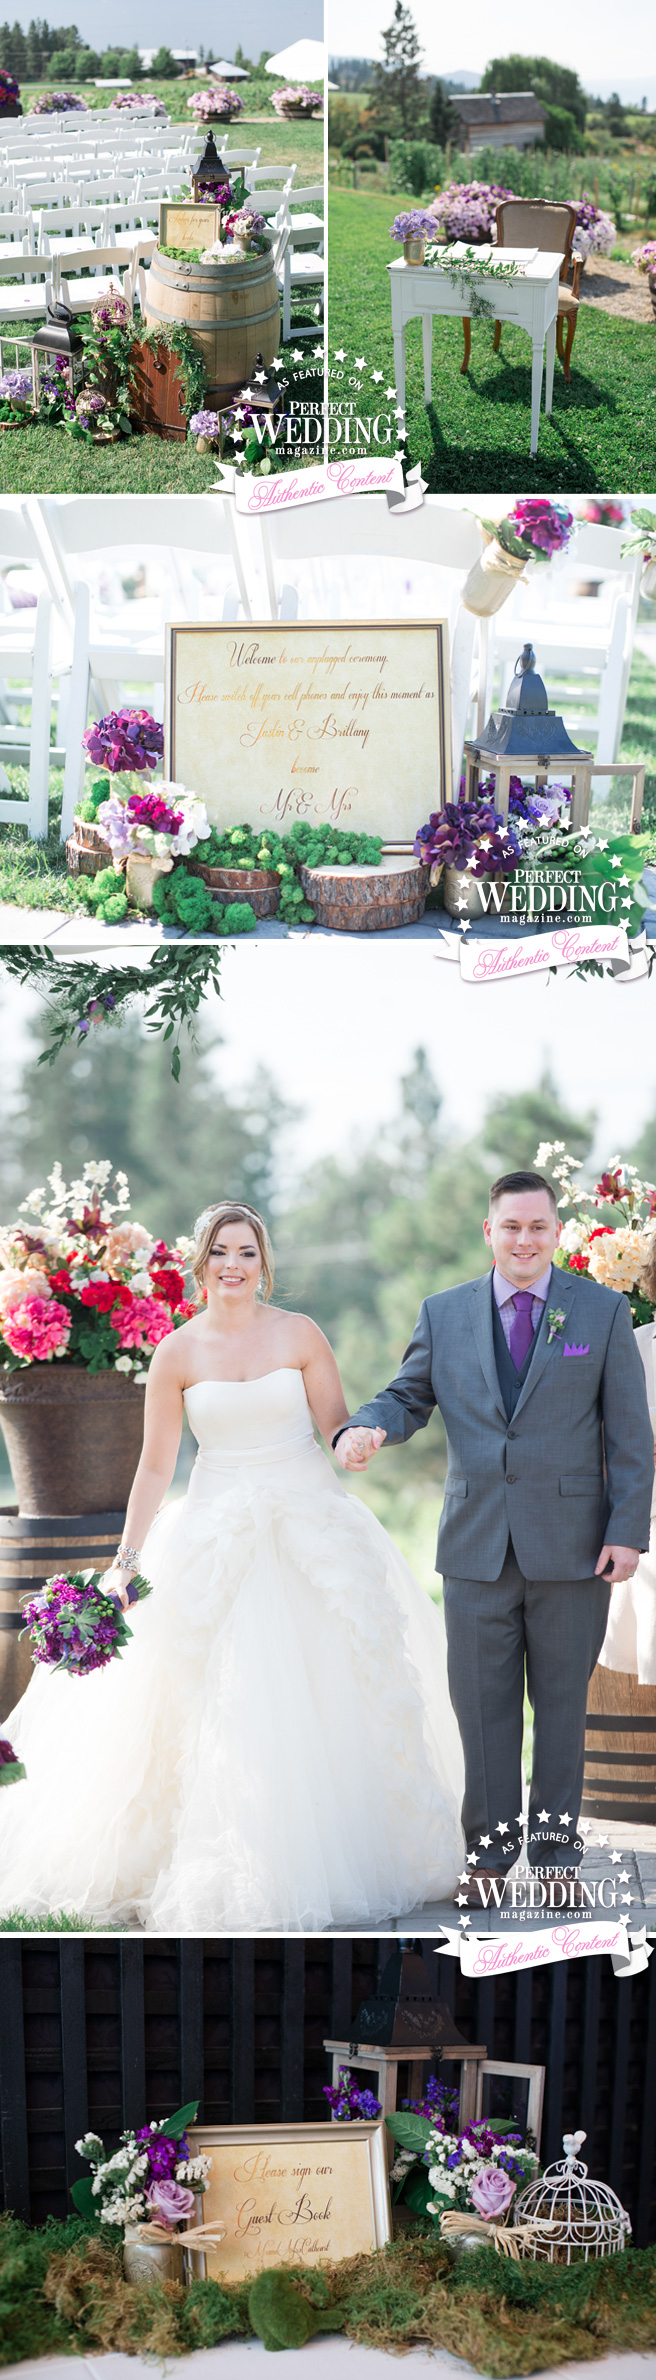 Perfect Love, Perfect Wedding Magazine, Secret Garden, Vera Wang Bride, Blush Occasions, Perfect Wedding Magazine blog, Okanagan Weddings